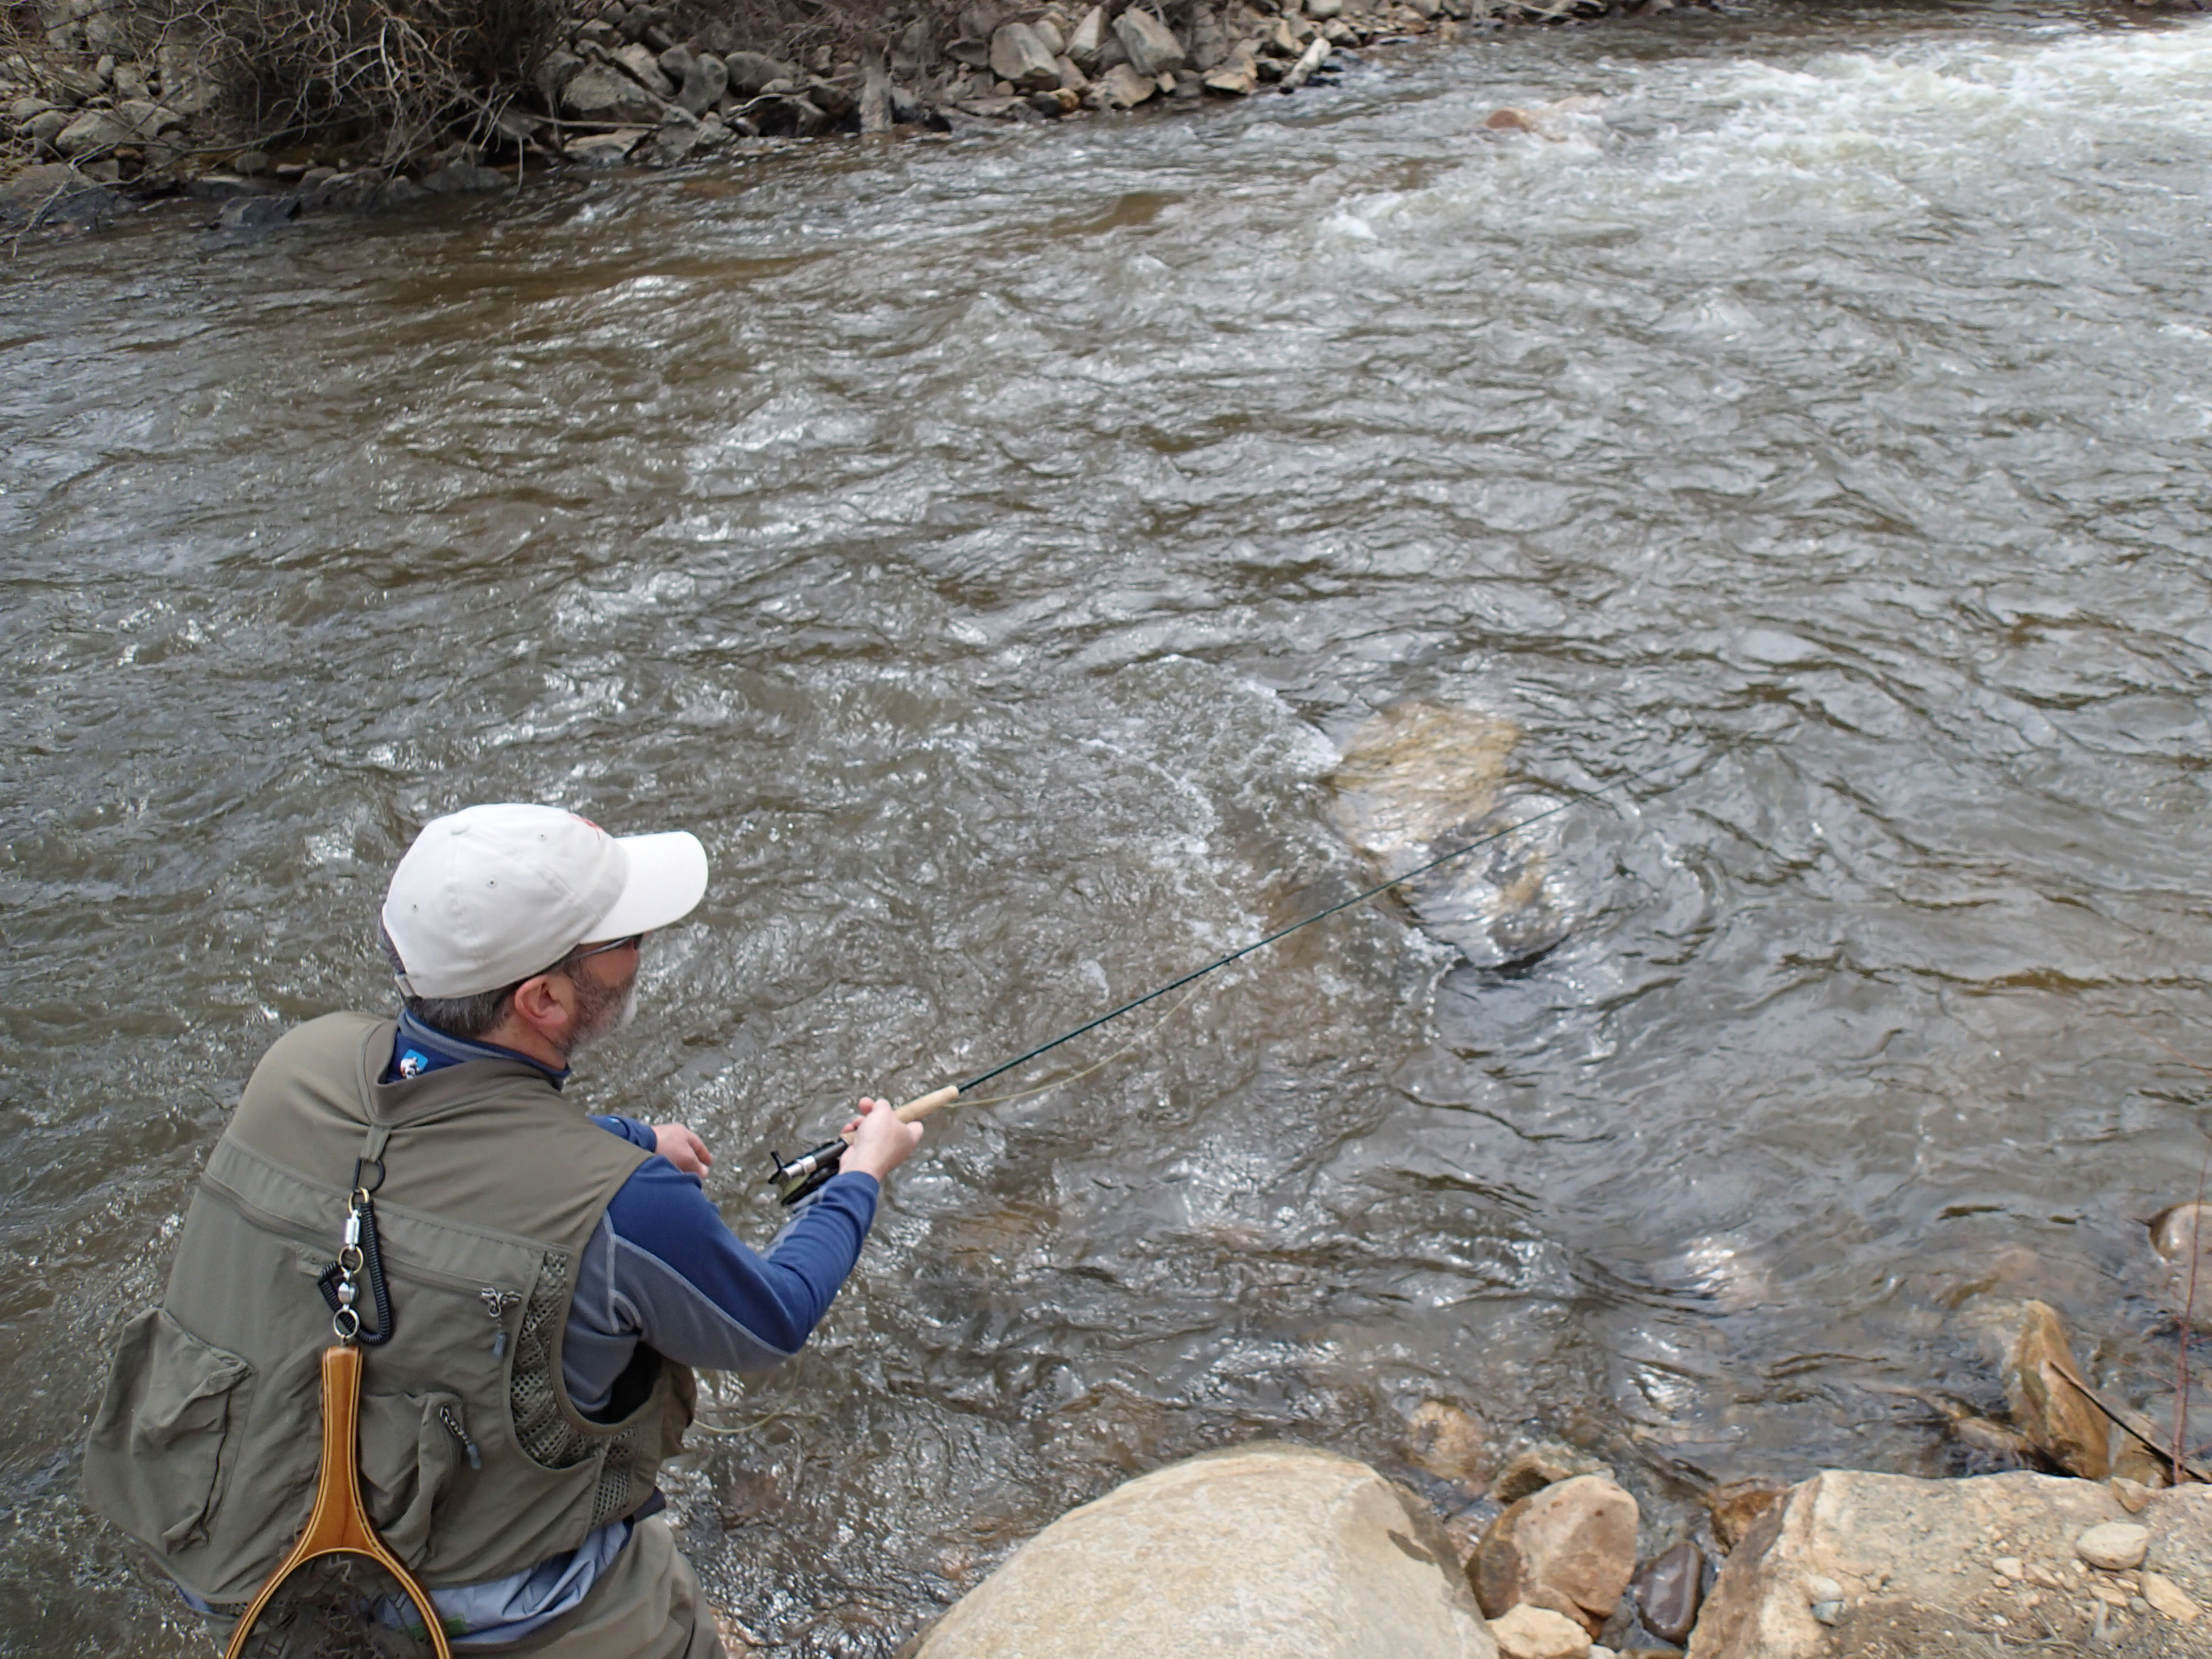 Colorado fly fishing reports lincoln hills trip report for Current fishing report